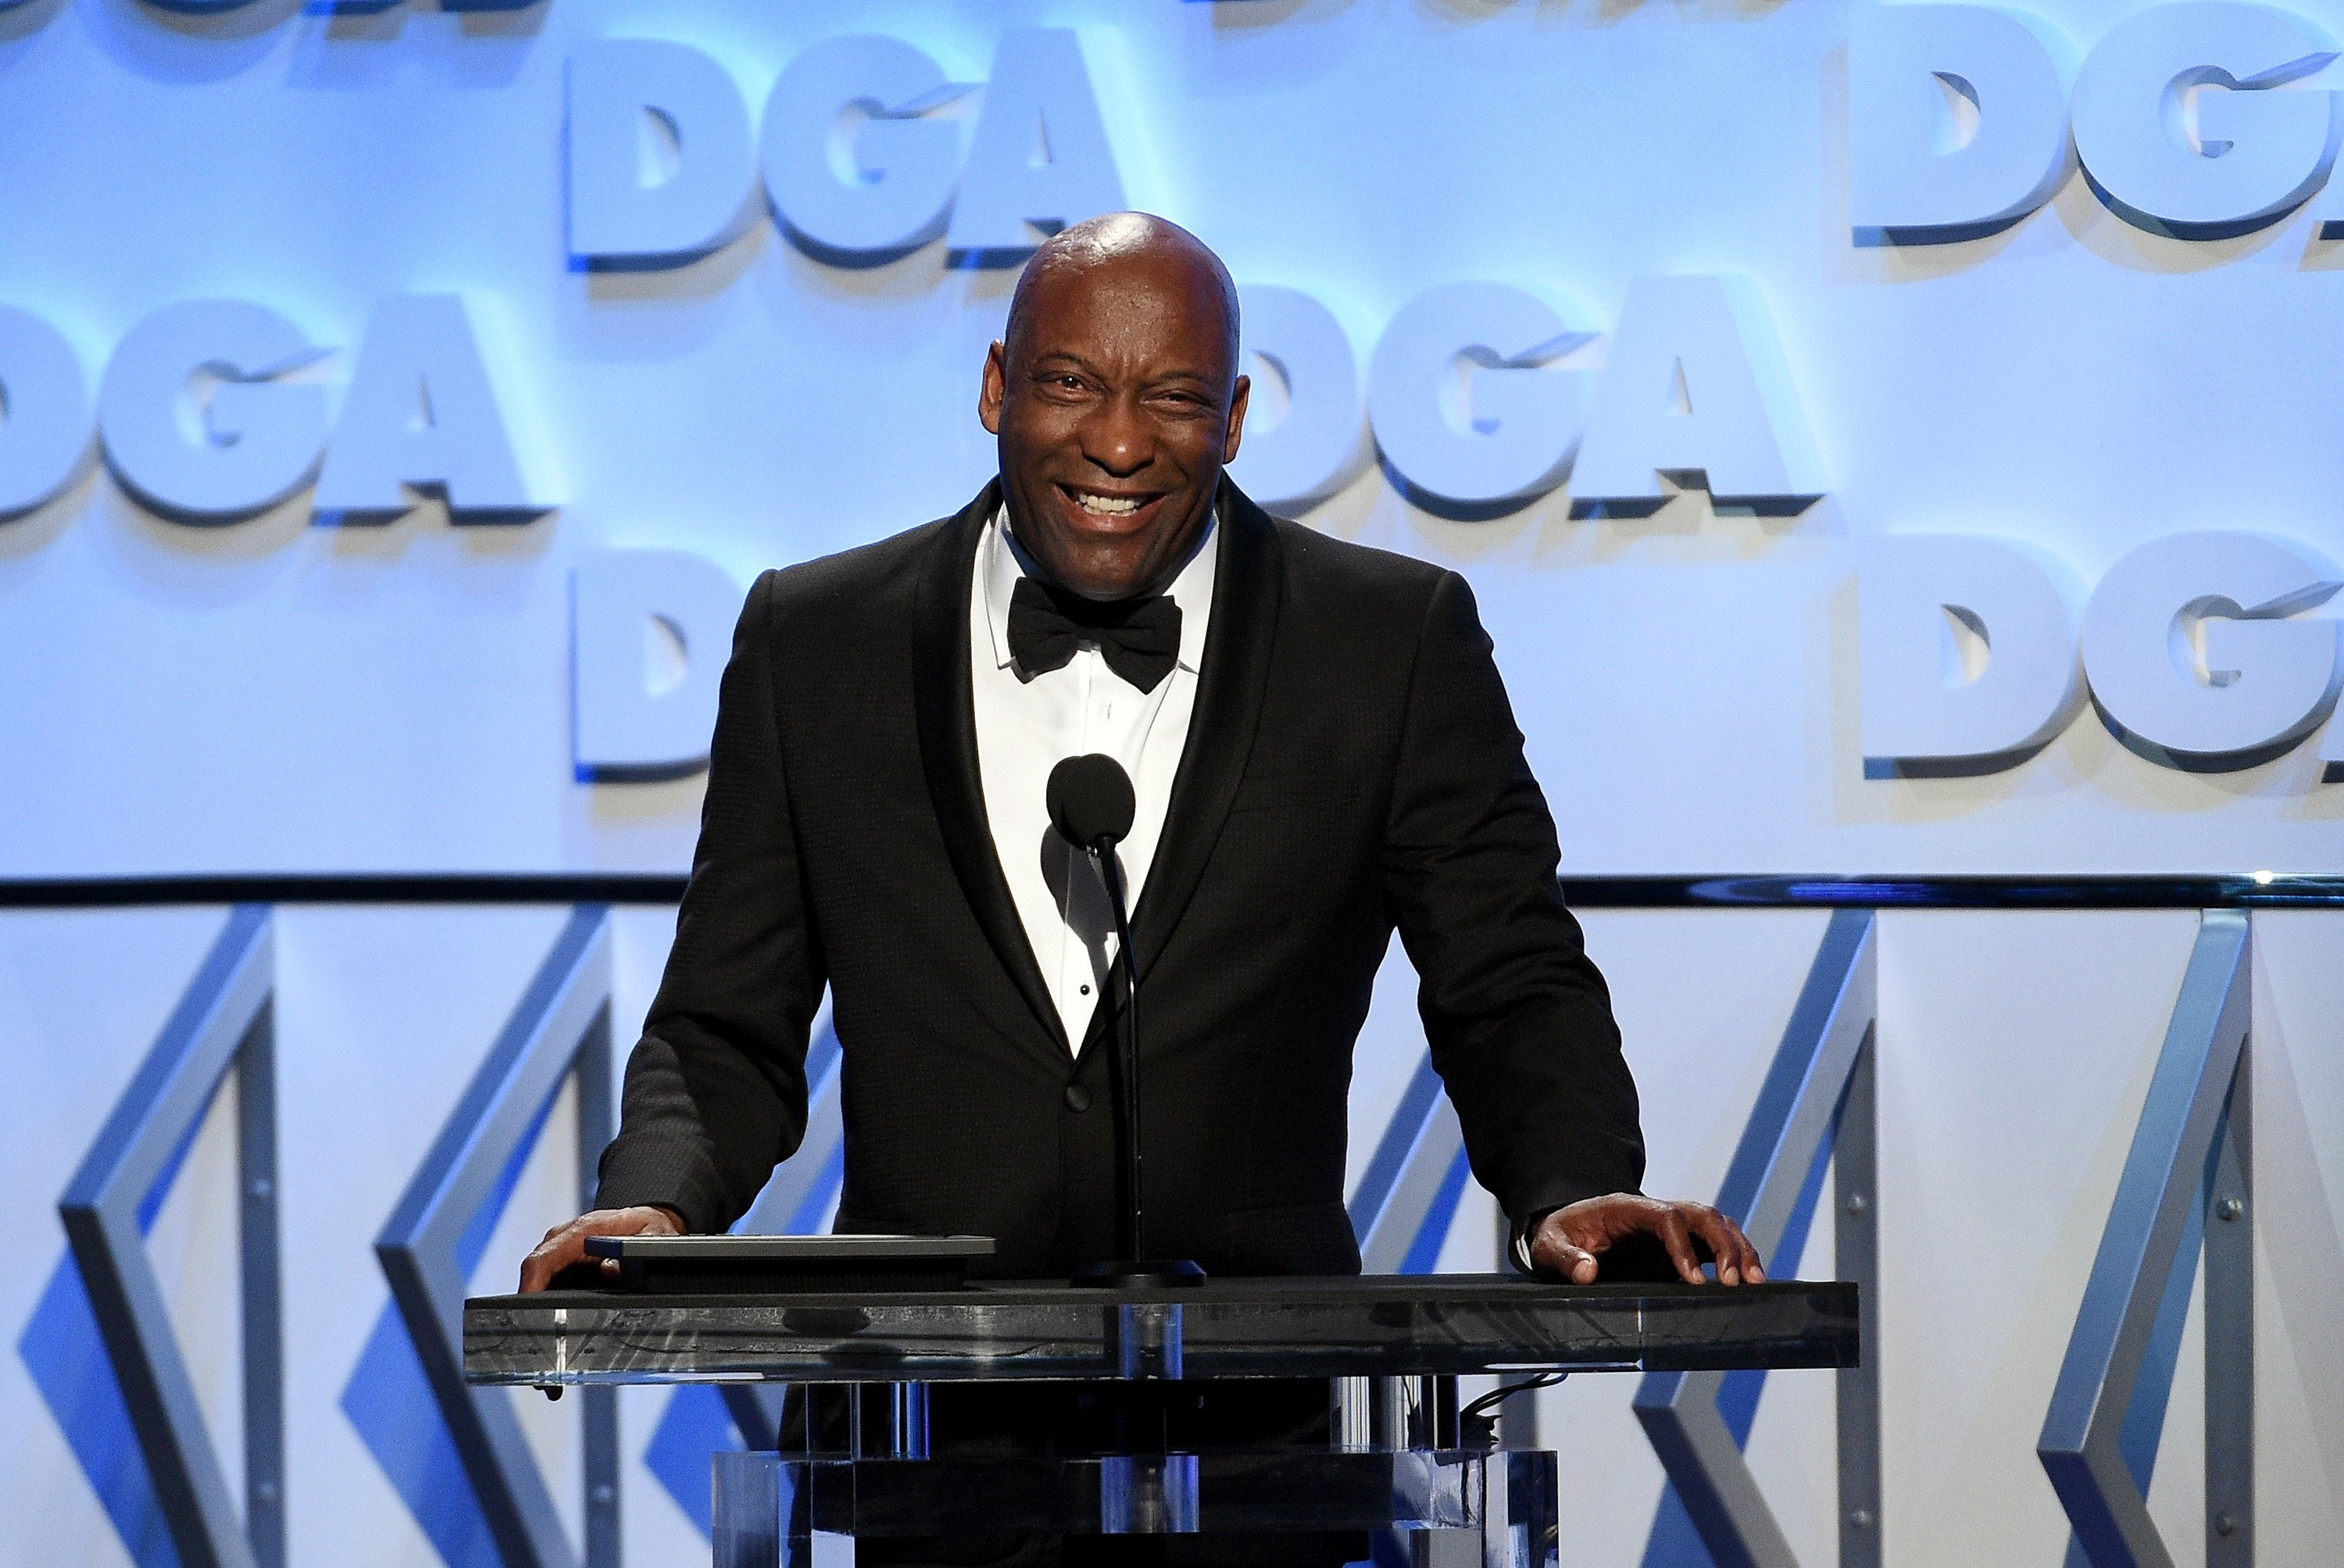 John Singleton speaking onstage during the 70th Annual Directors Guild Of America Awards in February 2018. | Photo: Getty Images